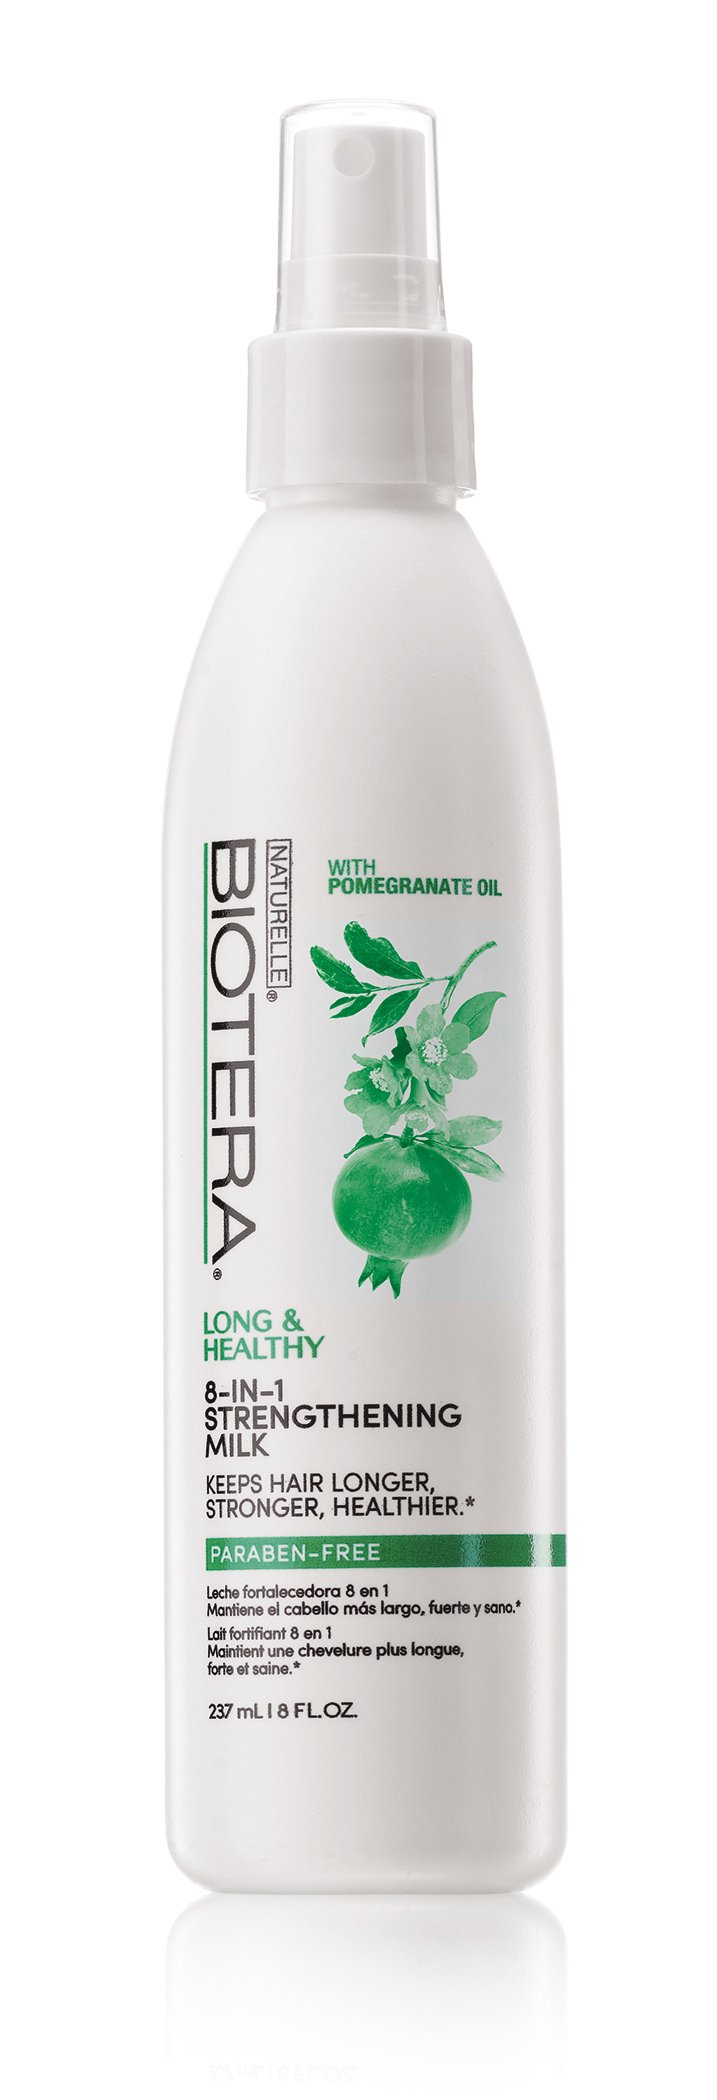 Biotera Long and Healthy 8-in-1 Strengthening Milk, 8-Ounce